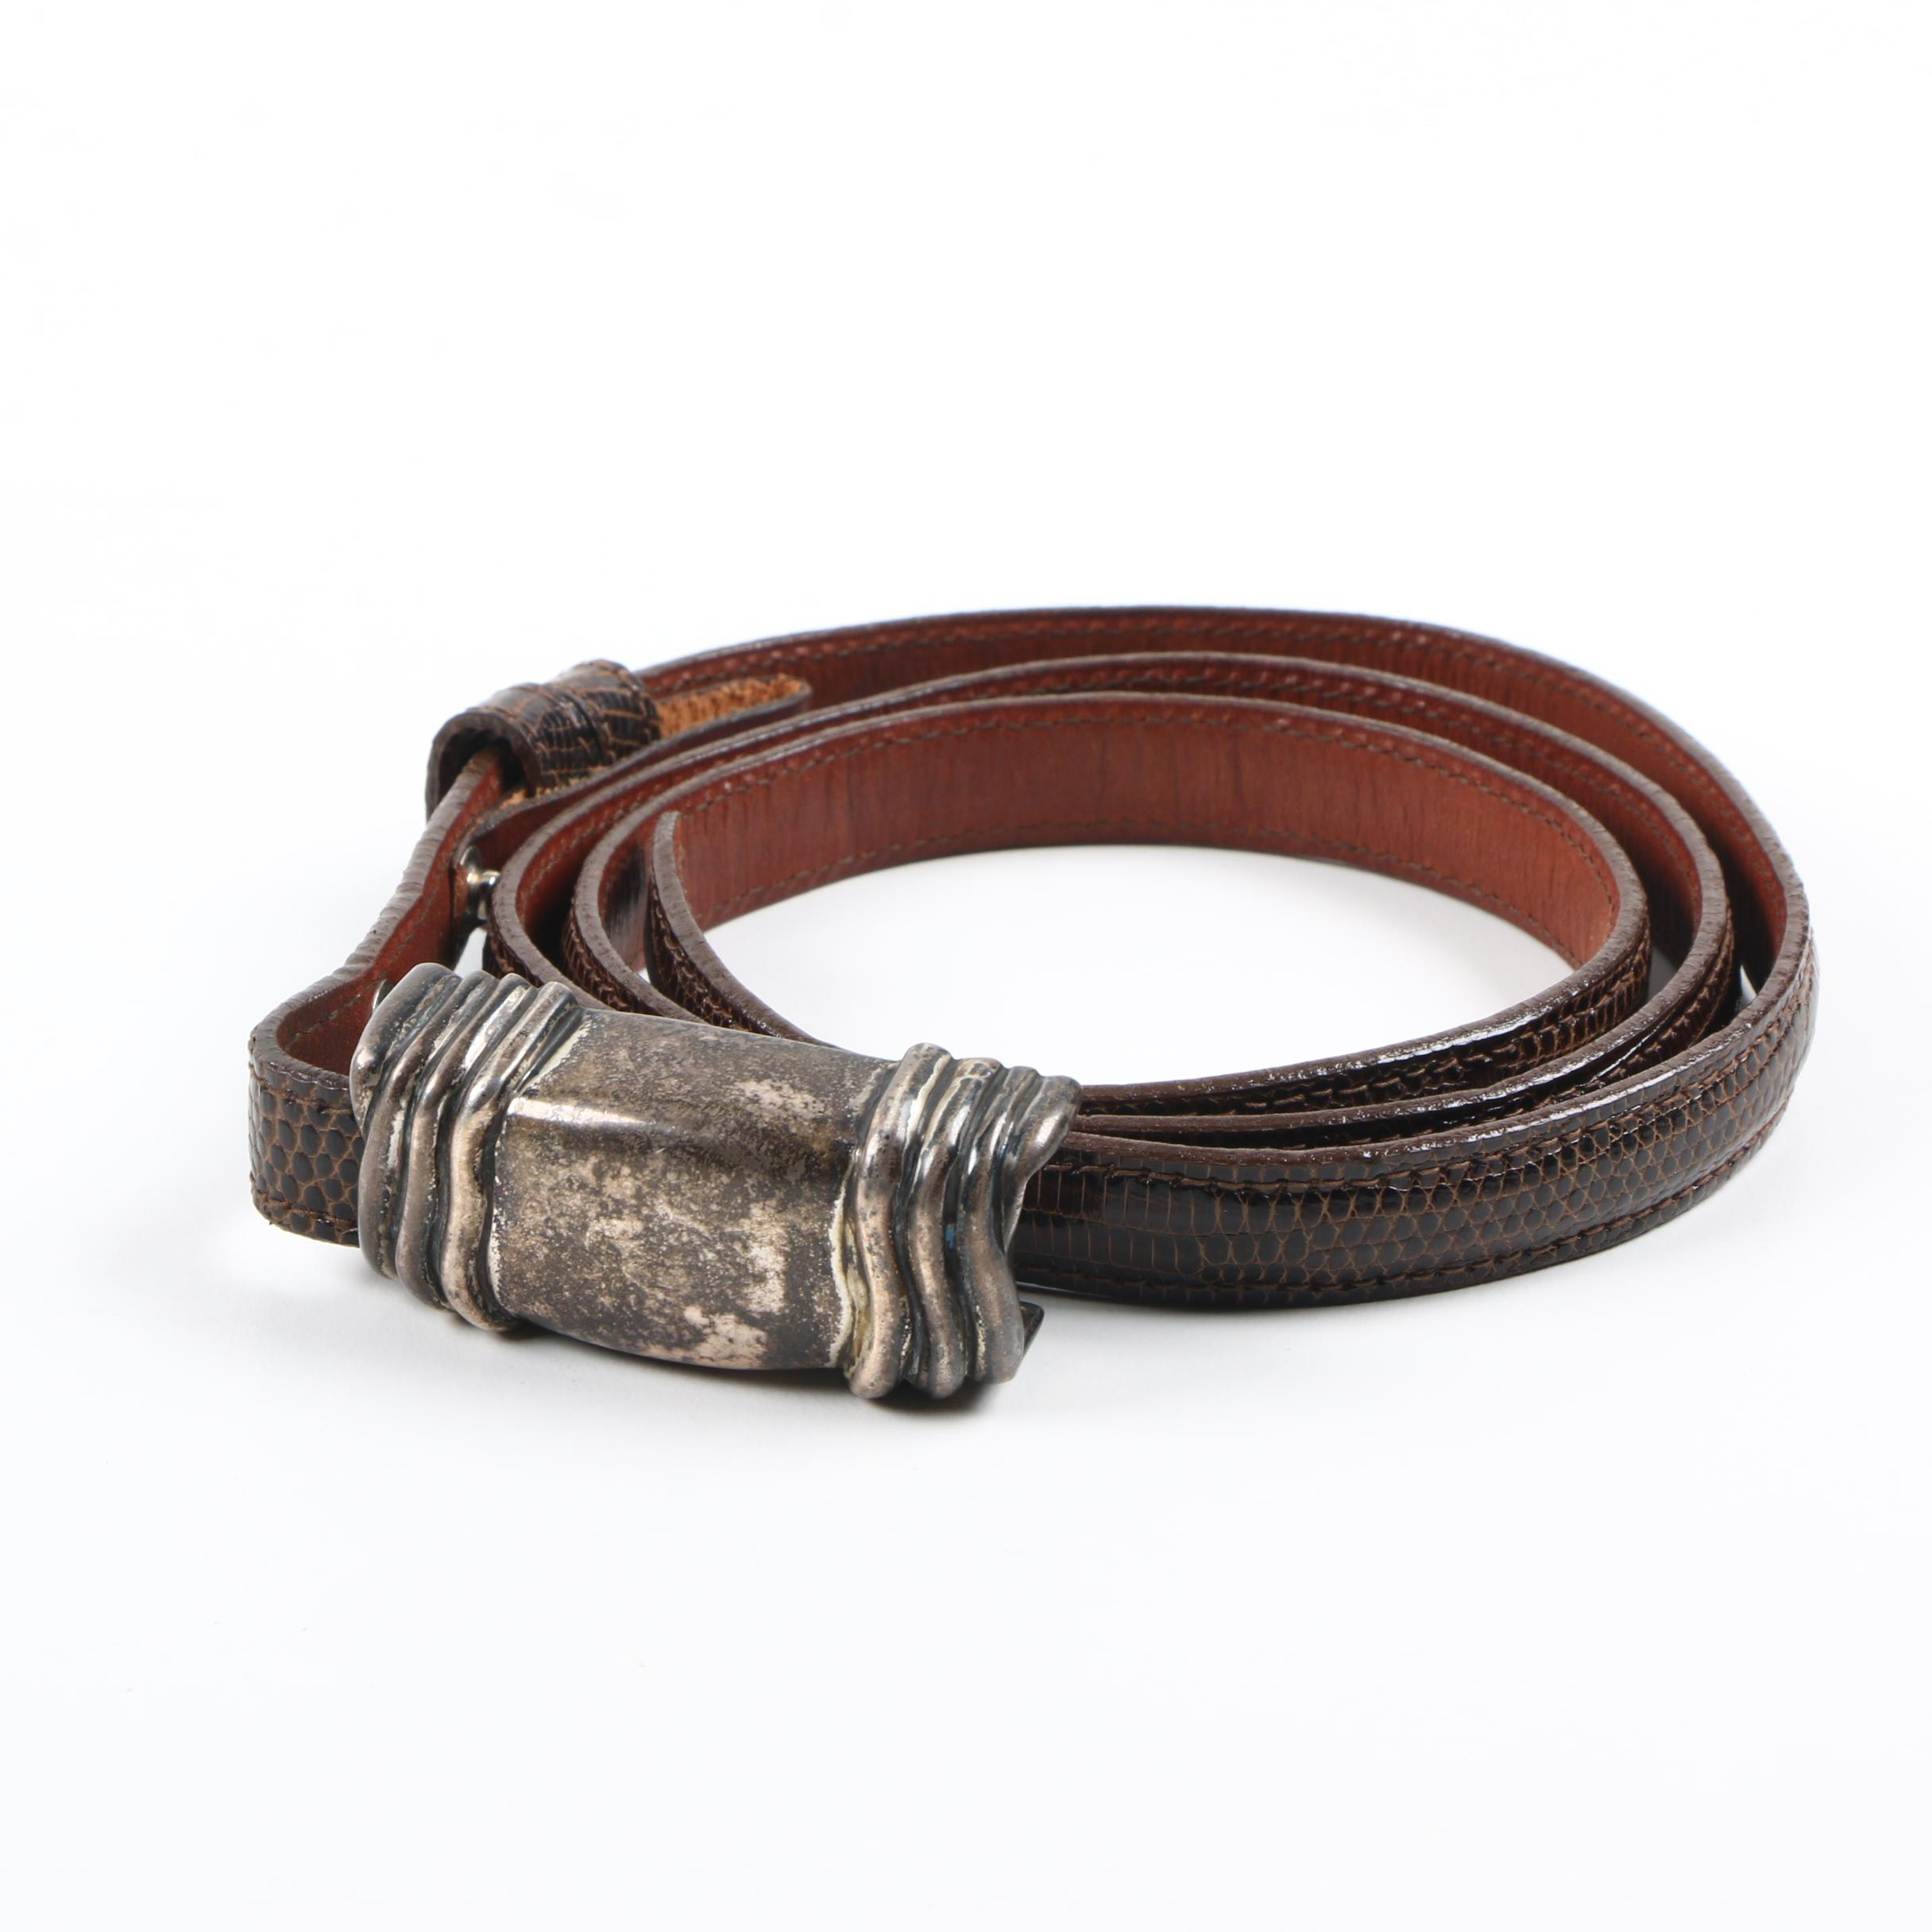 Barry Kieselstein-Cord Reptile Embossed Leather Belt with Sterling Silver Buckle